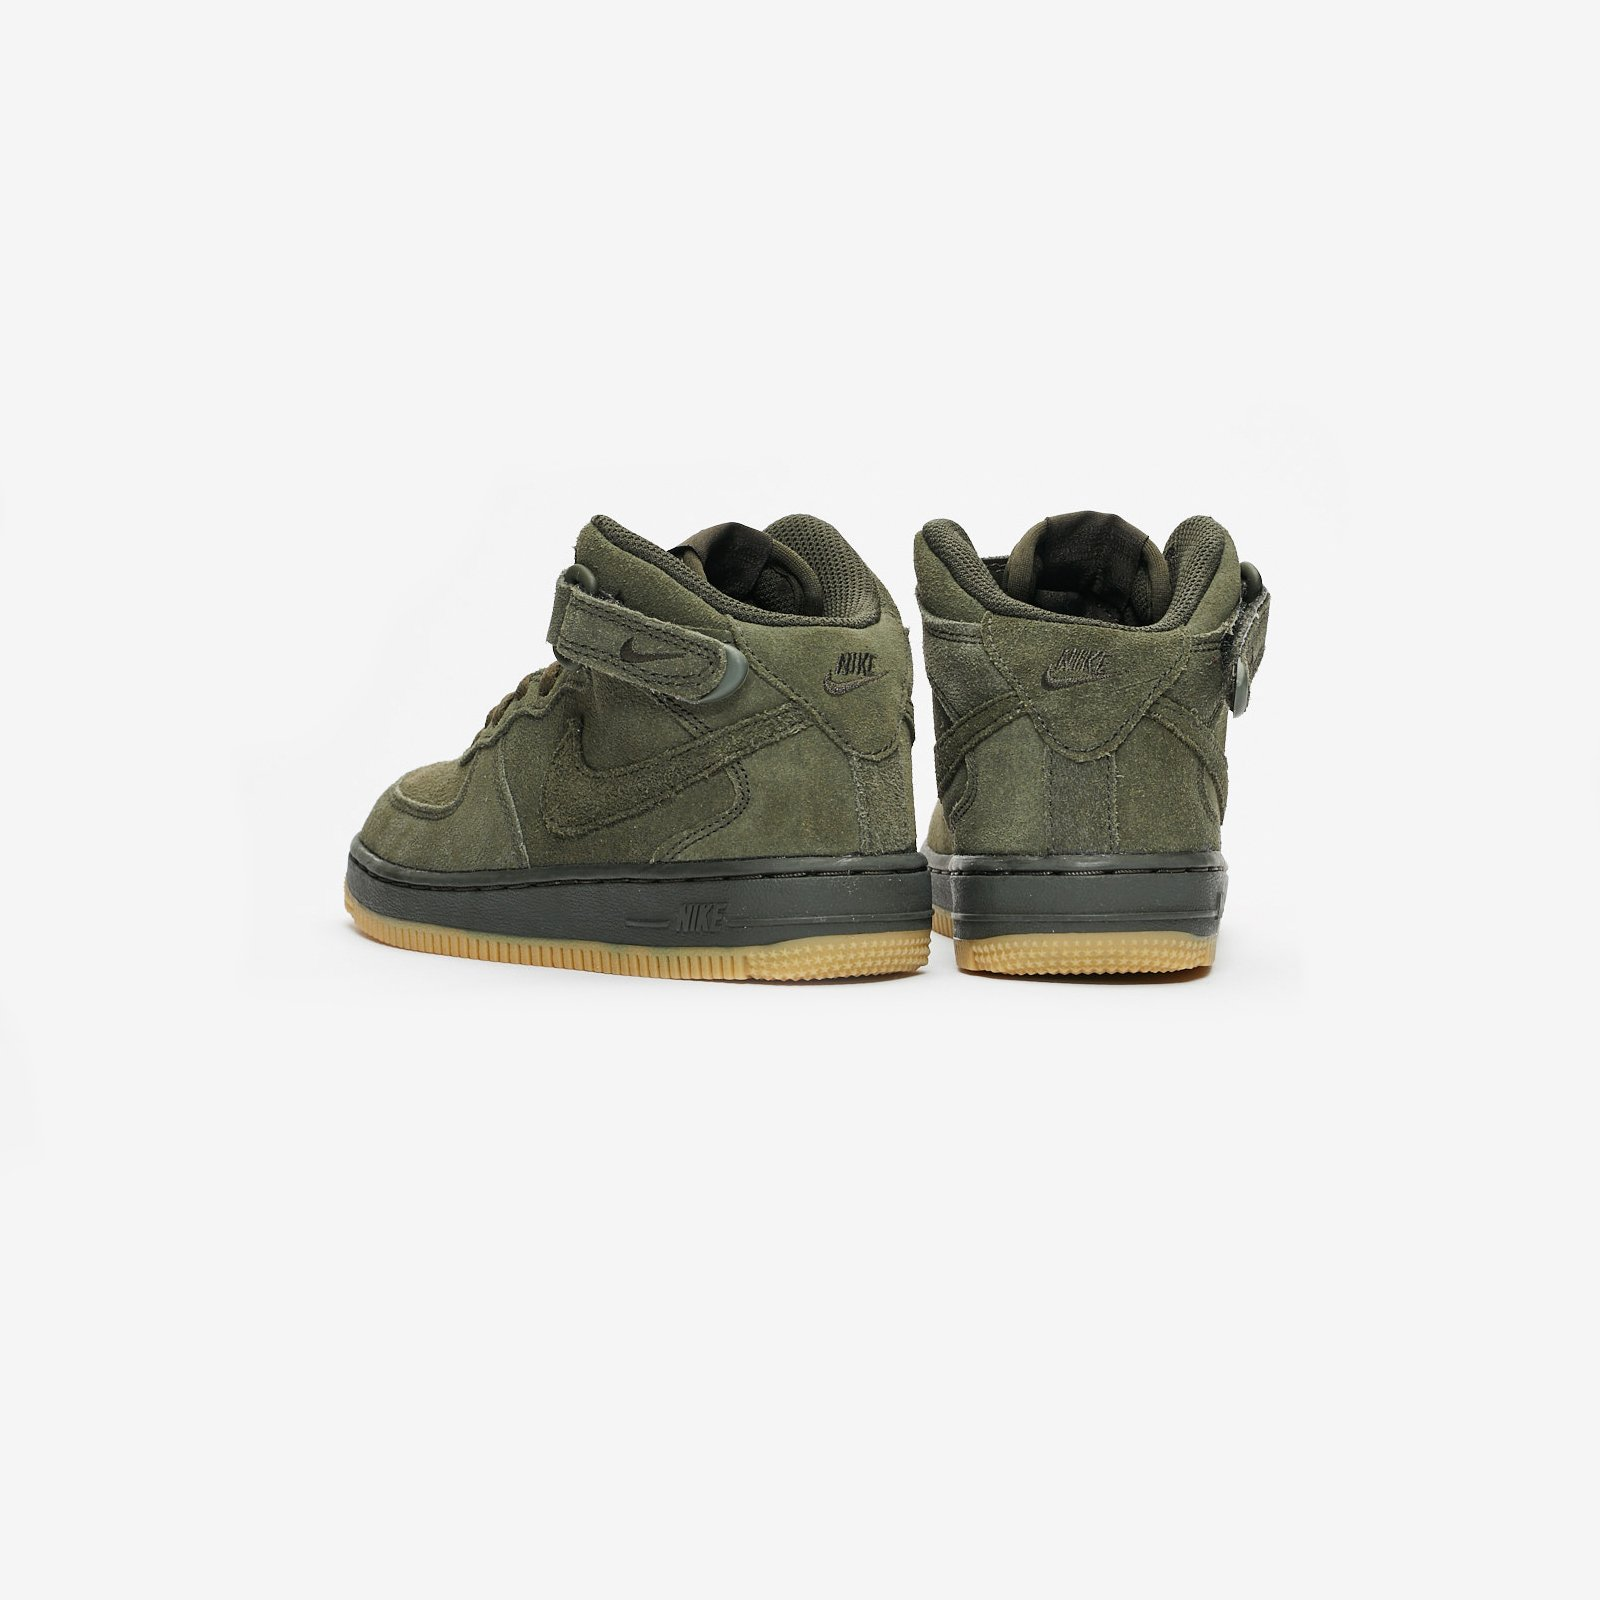 brand new d0ad6 43e63 Nike Air Force 1 Mid LV8 (PS) - 859337-300 - Sneakersnstuff | sneakers &  streetwear online since 1999